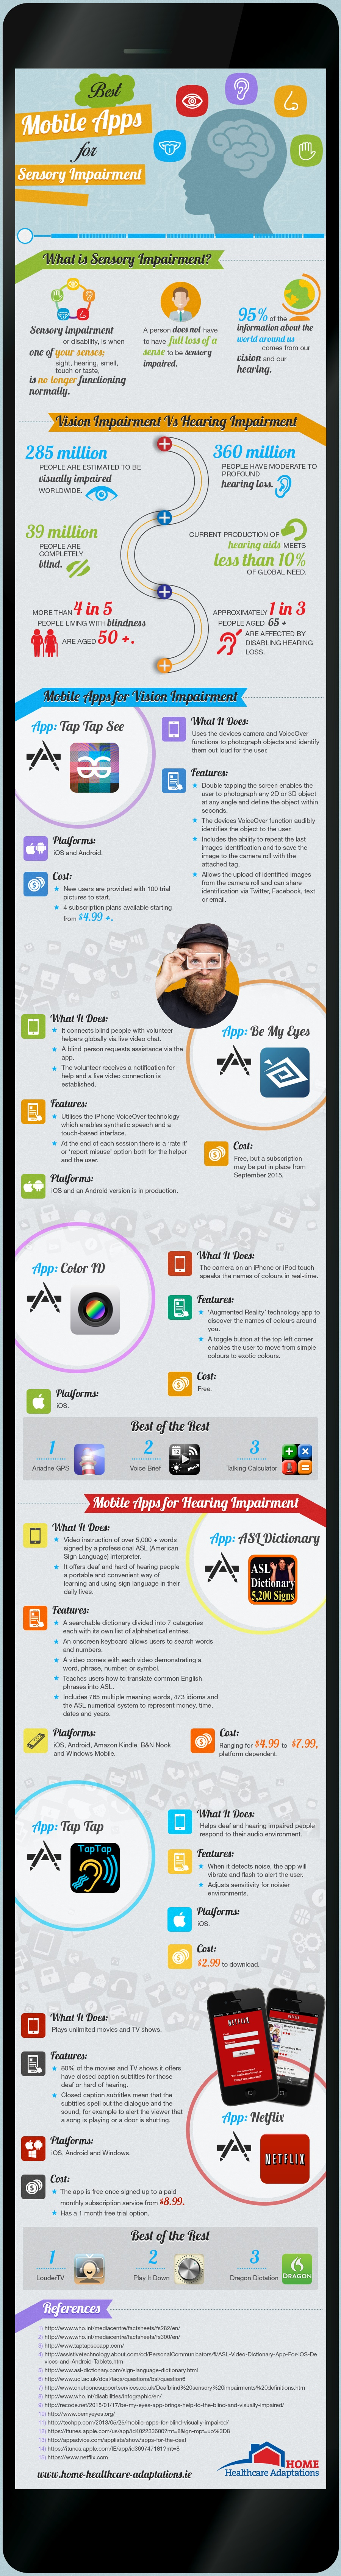 Mobile Apps for Sensory Impairments Infographic